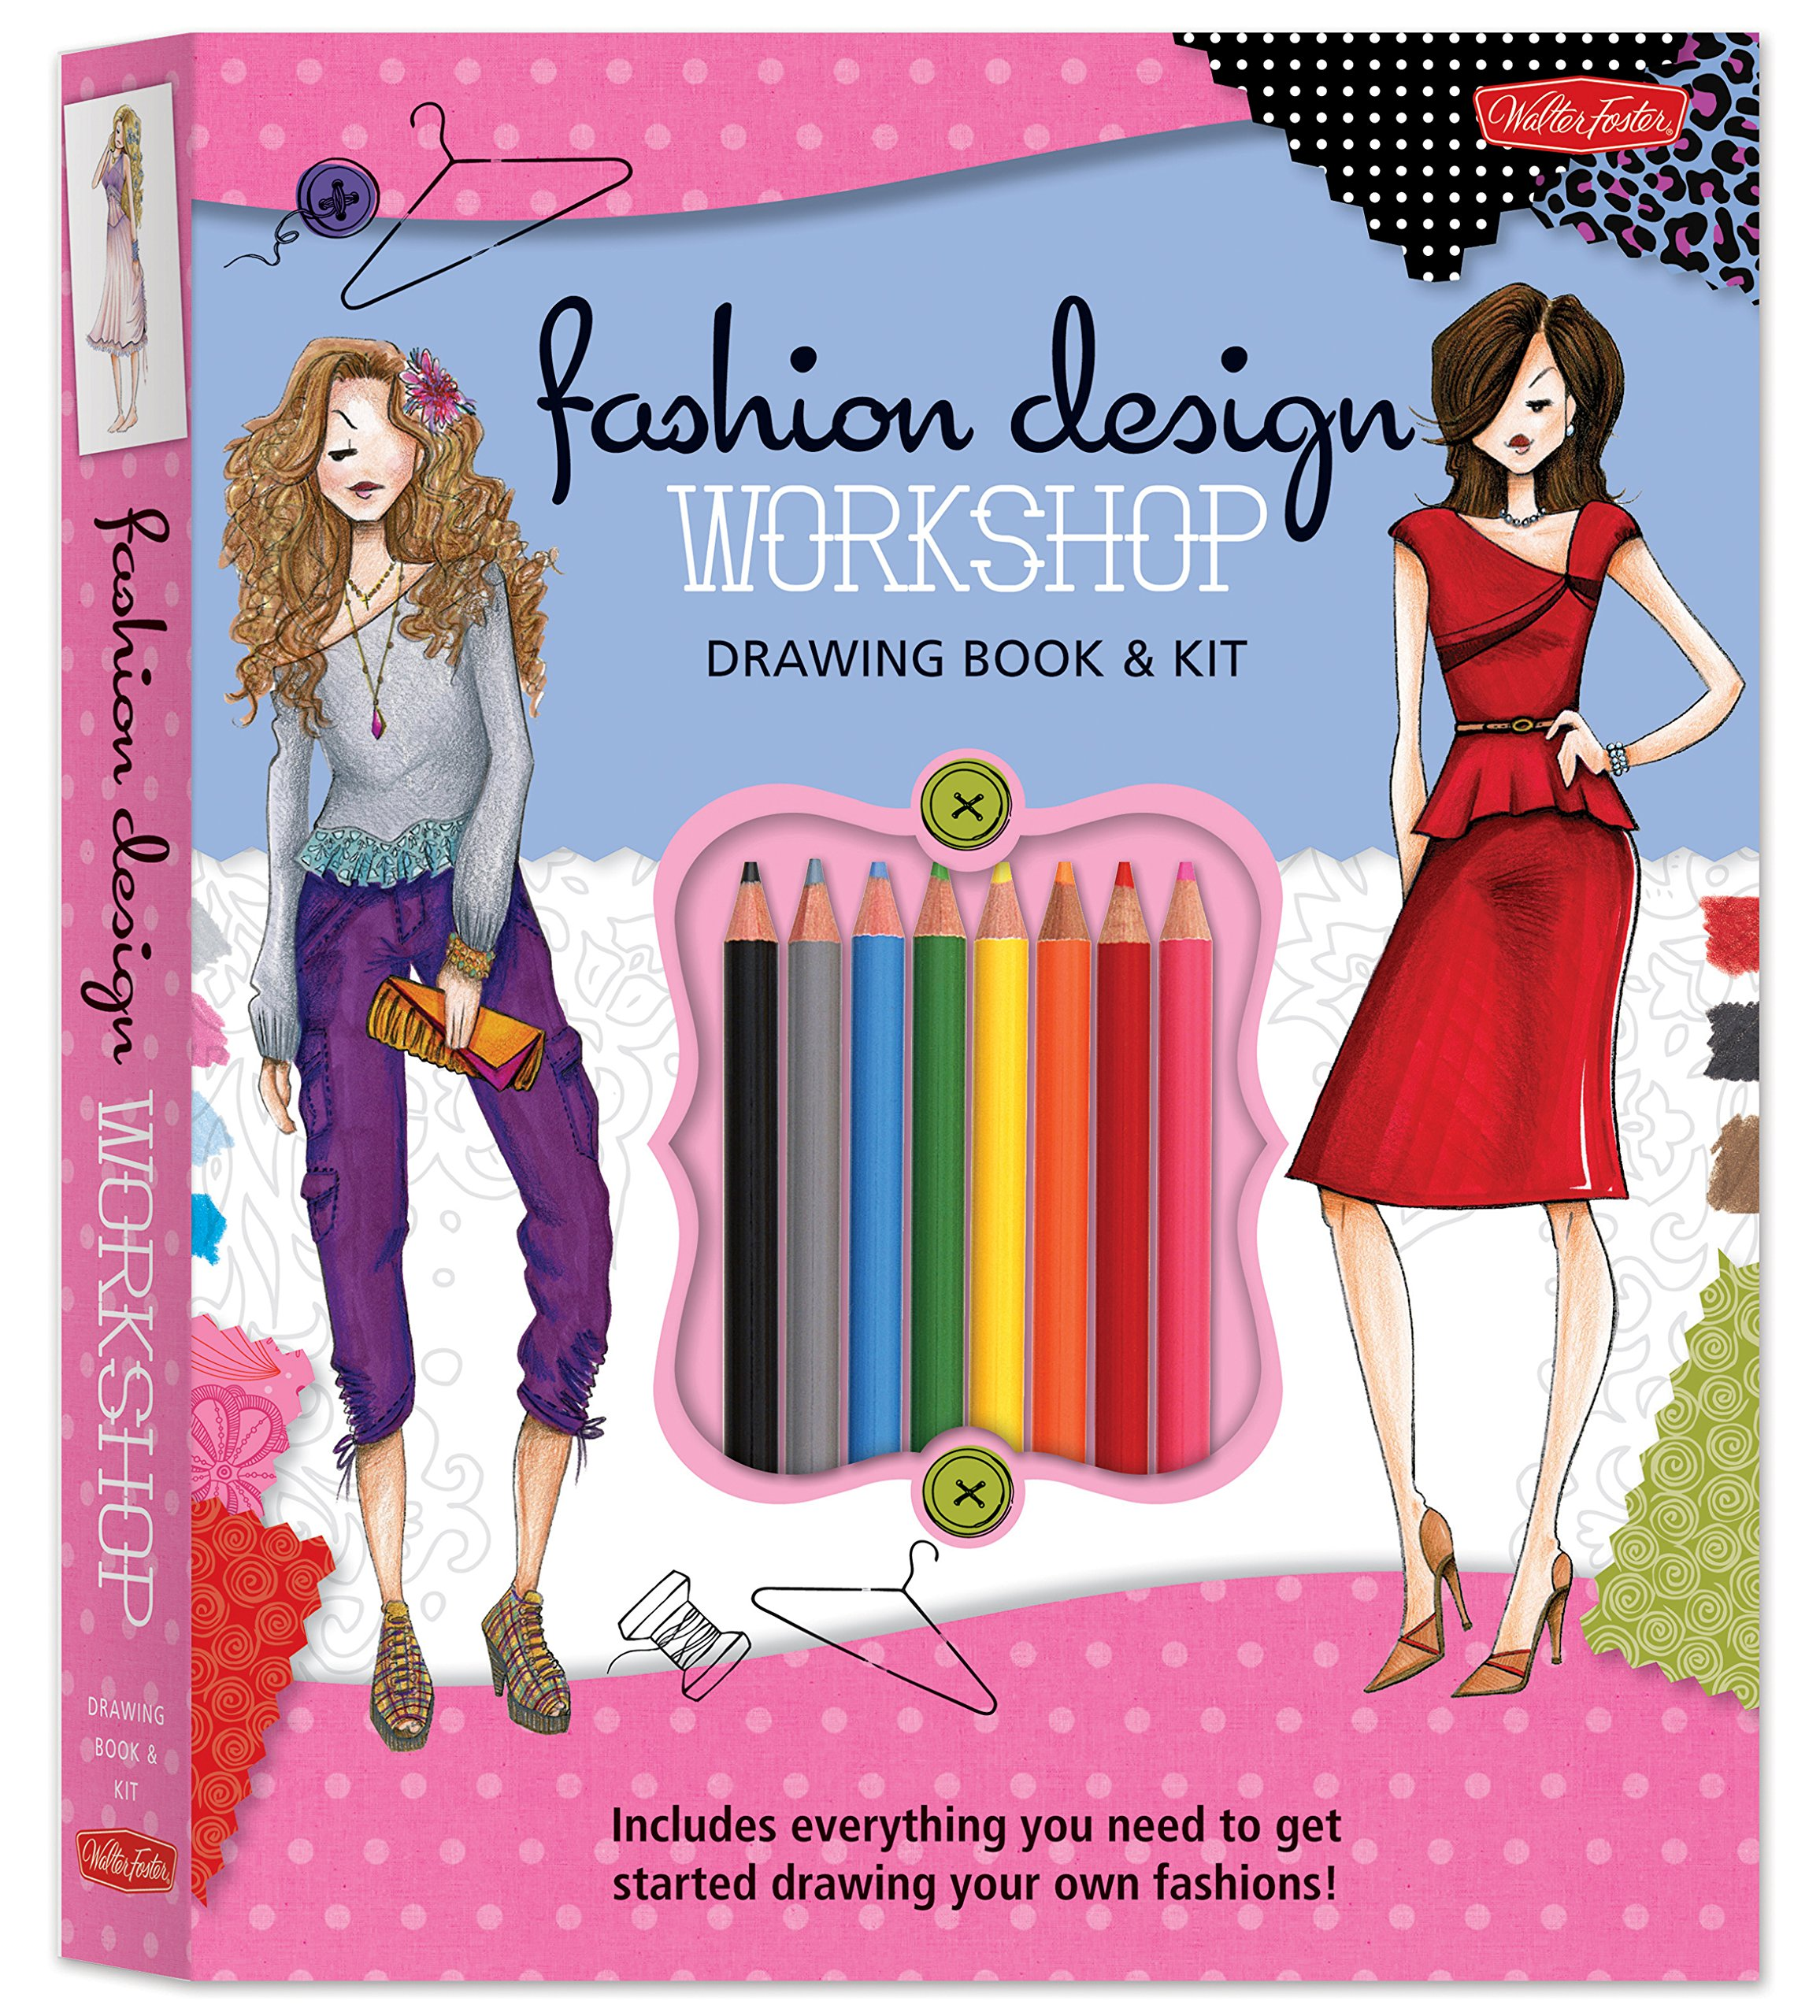 Fashion Design Workshop Drawing Book & Kit: Includes everything you need to get started drawing your own fashions! (Walter Foster Studio)